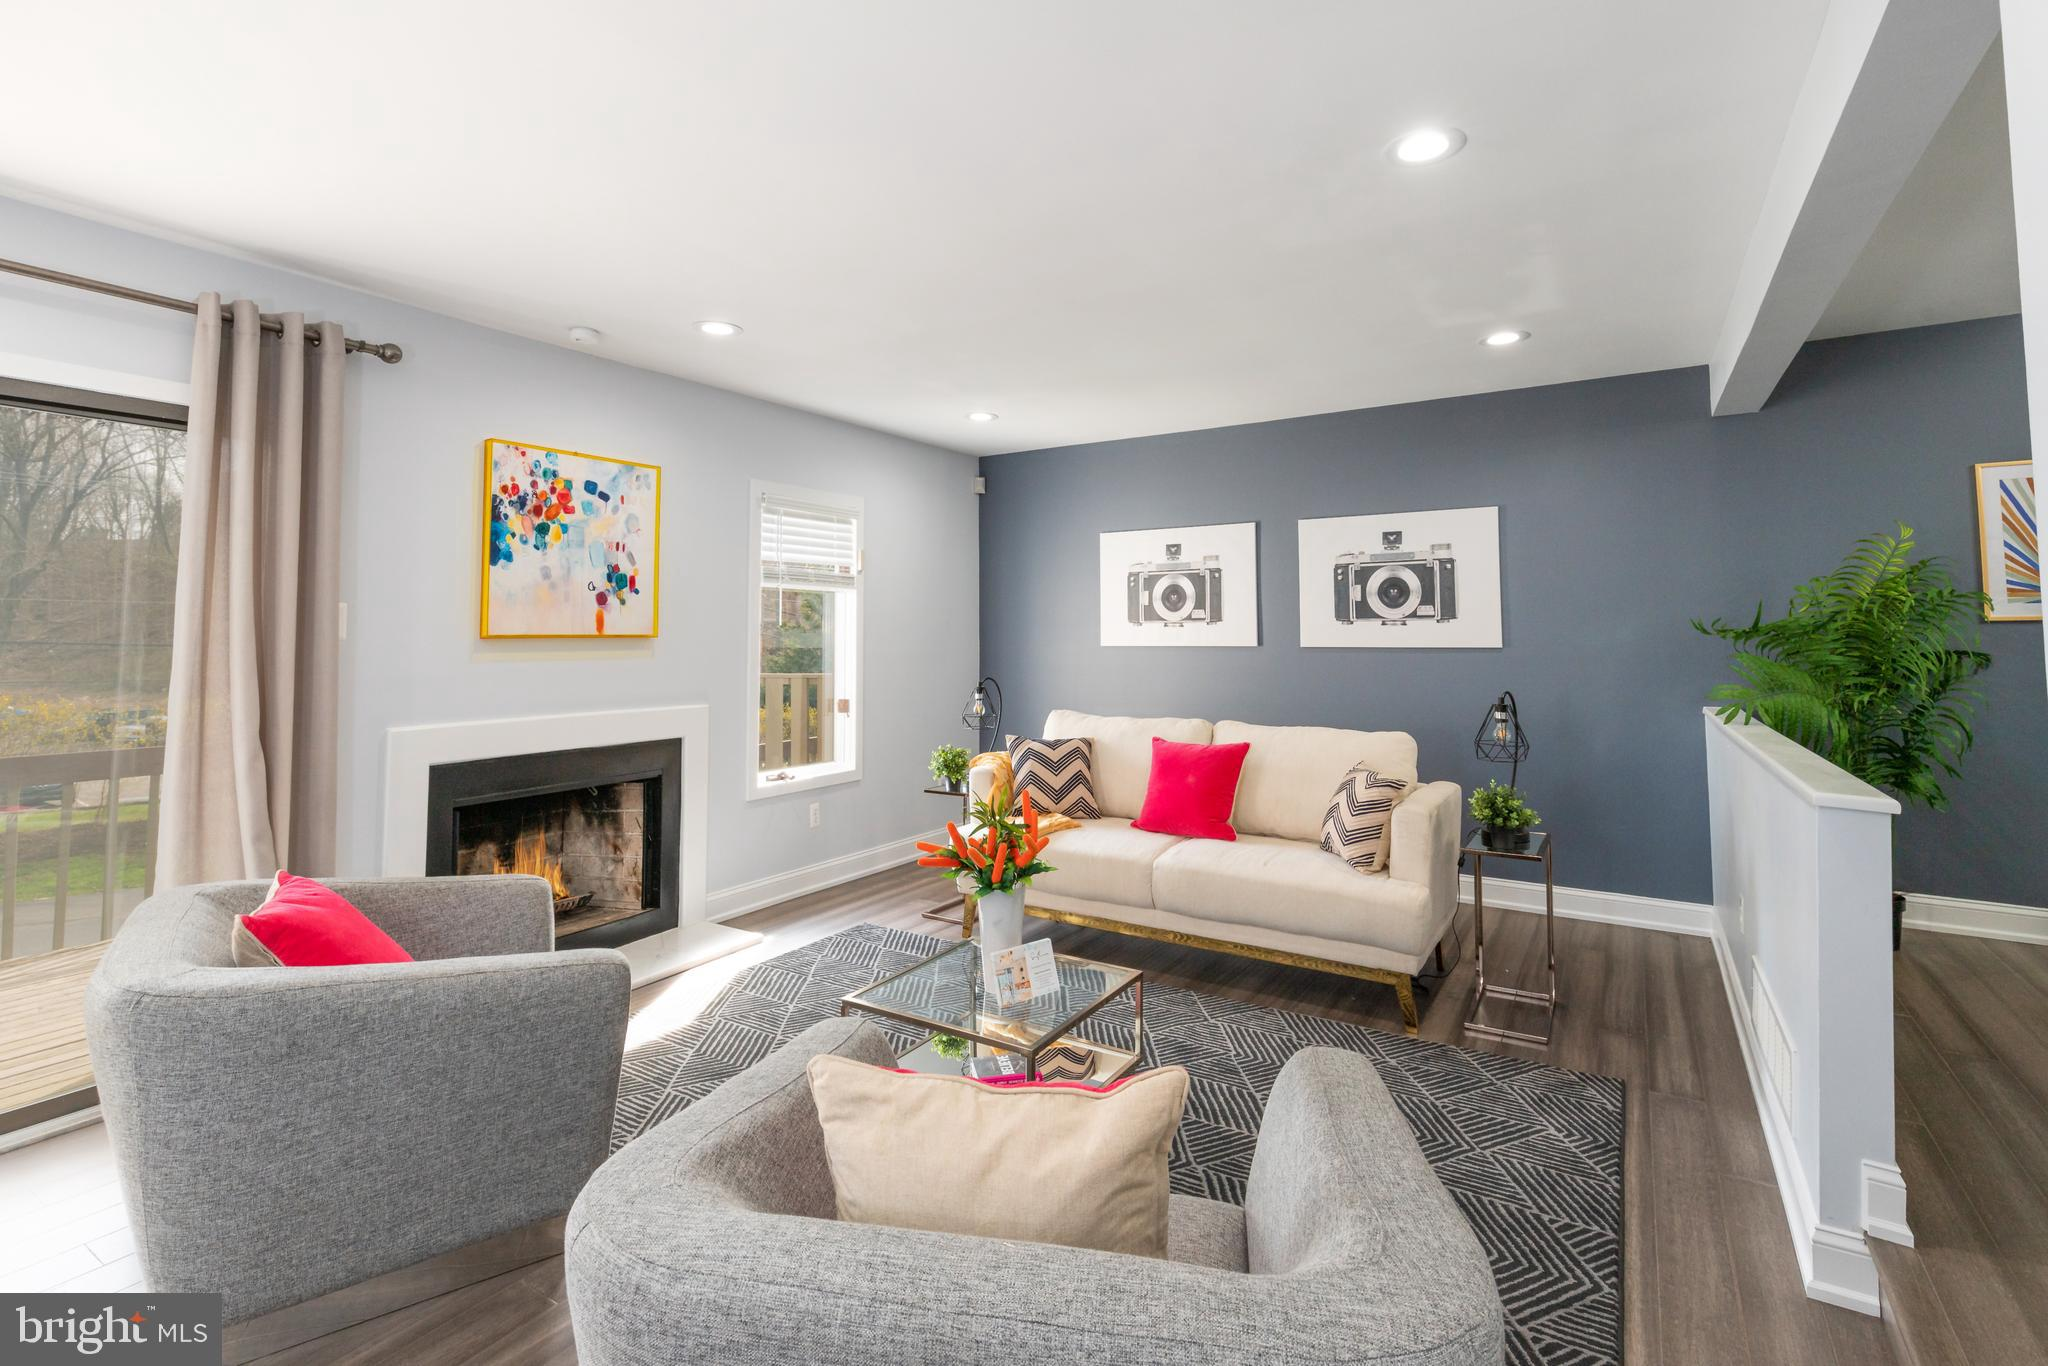 "Situated in the highly sought-after 138 Montrose Community, THIS is the home that you have been waiting for! This breathtaking, fully renovated, three story, three bedrooms, two and one half bathroom townhome boasts 2,000+ square feet of contemporary open floorplan in prime Radnor Township; the PERFECT ""walk to Bryn Mawr"" location.  Enter the foyer of this gorgeous townhome from your private patio.  You will immediately appreciate the attention to detail, open floor plan, beautiful bamboo flooring, large coat closet, fresh powder room, and ample recessed lighting. The first floor also offers a spacious and modern eat-in kitchen featuring stainless steel appliances, granite counters, tiled backsplash, and sleek shaker style white cabinetry – providing a bright kitchen. The kitchen opens to the private fenced in flagstone patio, perfect for enjoying your morning cup of coffee or just to get some fresh air.  Finishing out the main level, you will be greeted by an airy dining room and a large living room. In the living room, you can cozy up next to your eye catching marble fireplace that is adjacent to your custom accent wall. Completing the first floor is a generously sized balcony providing an enormous amount of extra light throughout the first floor living space.  The second-floor features brand new carpeting throughout. You will be impressed by the bright and spacious primary bedroom with heaps of natural light pouring in, a walk-in closet, ceiling fan, and a private en-suite fully renovated bathroom featuring a glass enclosed shower/tub combination. The second bedroom is also situated on this floor with a full renovated contemporary bathroom. Rounding out the second floor is a conveniently located laundry area and linen closet with loads of storage. Perched on the third story is an incredible open and airy lofted bedroom or office, illuminated by two skylights. Best part yet, this home includes TWO parking spaces!   The Montrose community of townhomes is set within lush manicured grounds.  Cool off at the community swimming pool or take a short walk to fine dining, shopping, entertainment, and public transportation. This convenient location is just 30 minutes to Center City Philadelphia by car or train.    Don't miss your opportunity to live in this incredible community, a low maintenance lifestyle just steps away from everything Bryn Mawr has to offer. This WILL NOT last long, set up your private showing today. Thank you for your interest and consideration! ** Please view our matterport tour:  https://my.matterport.com/show/?m=JgVoUVcQgTy&mls=1 **"